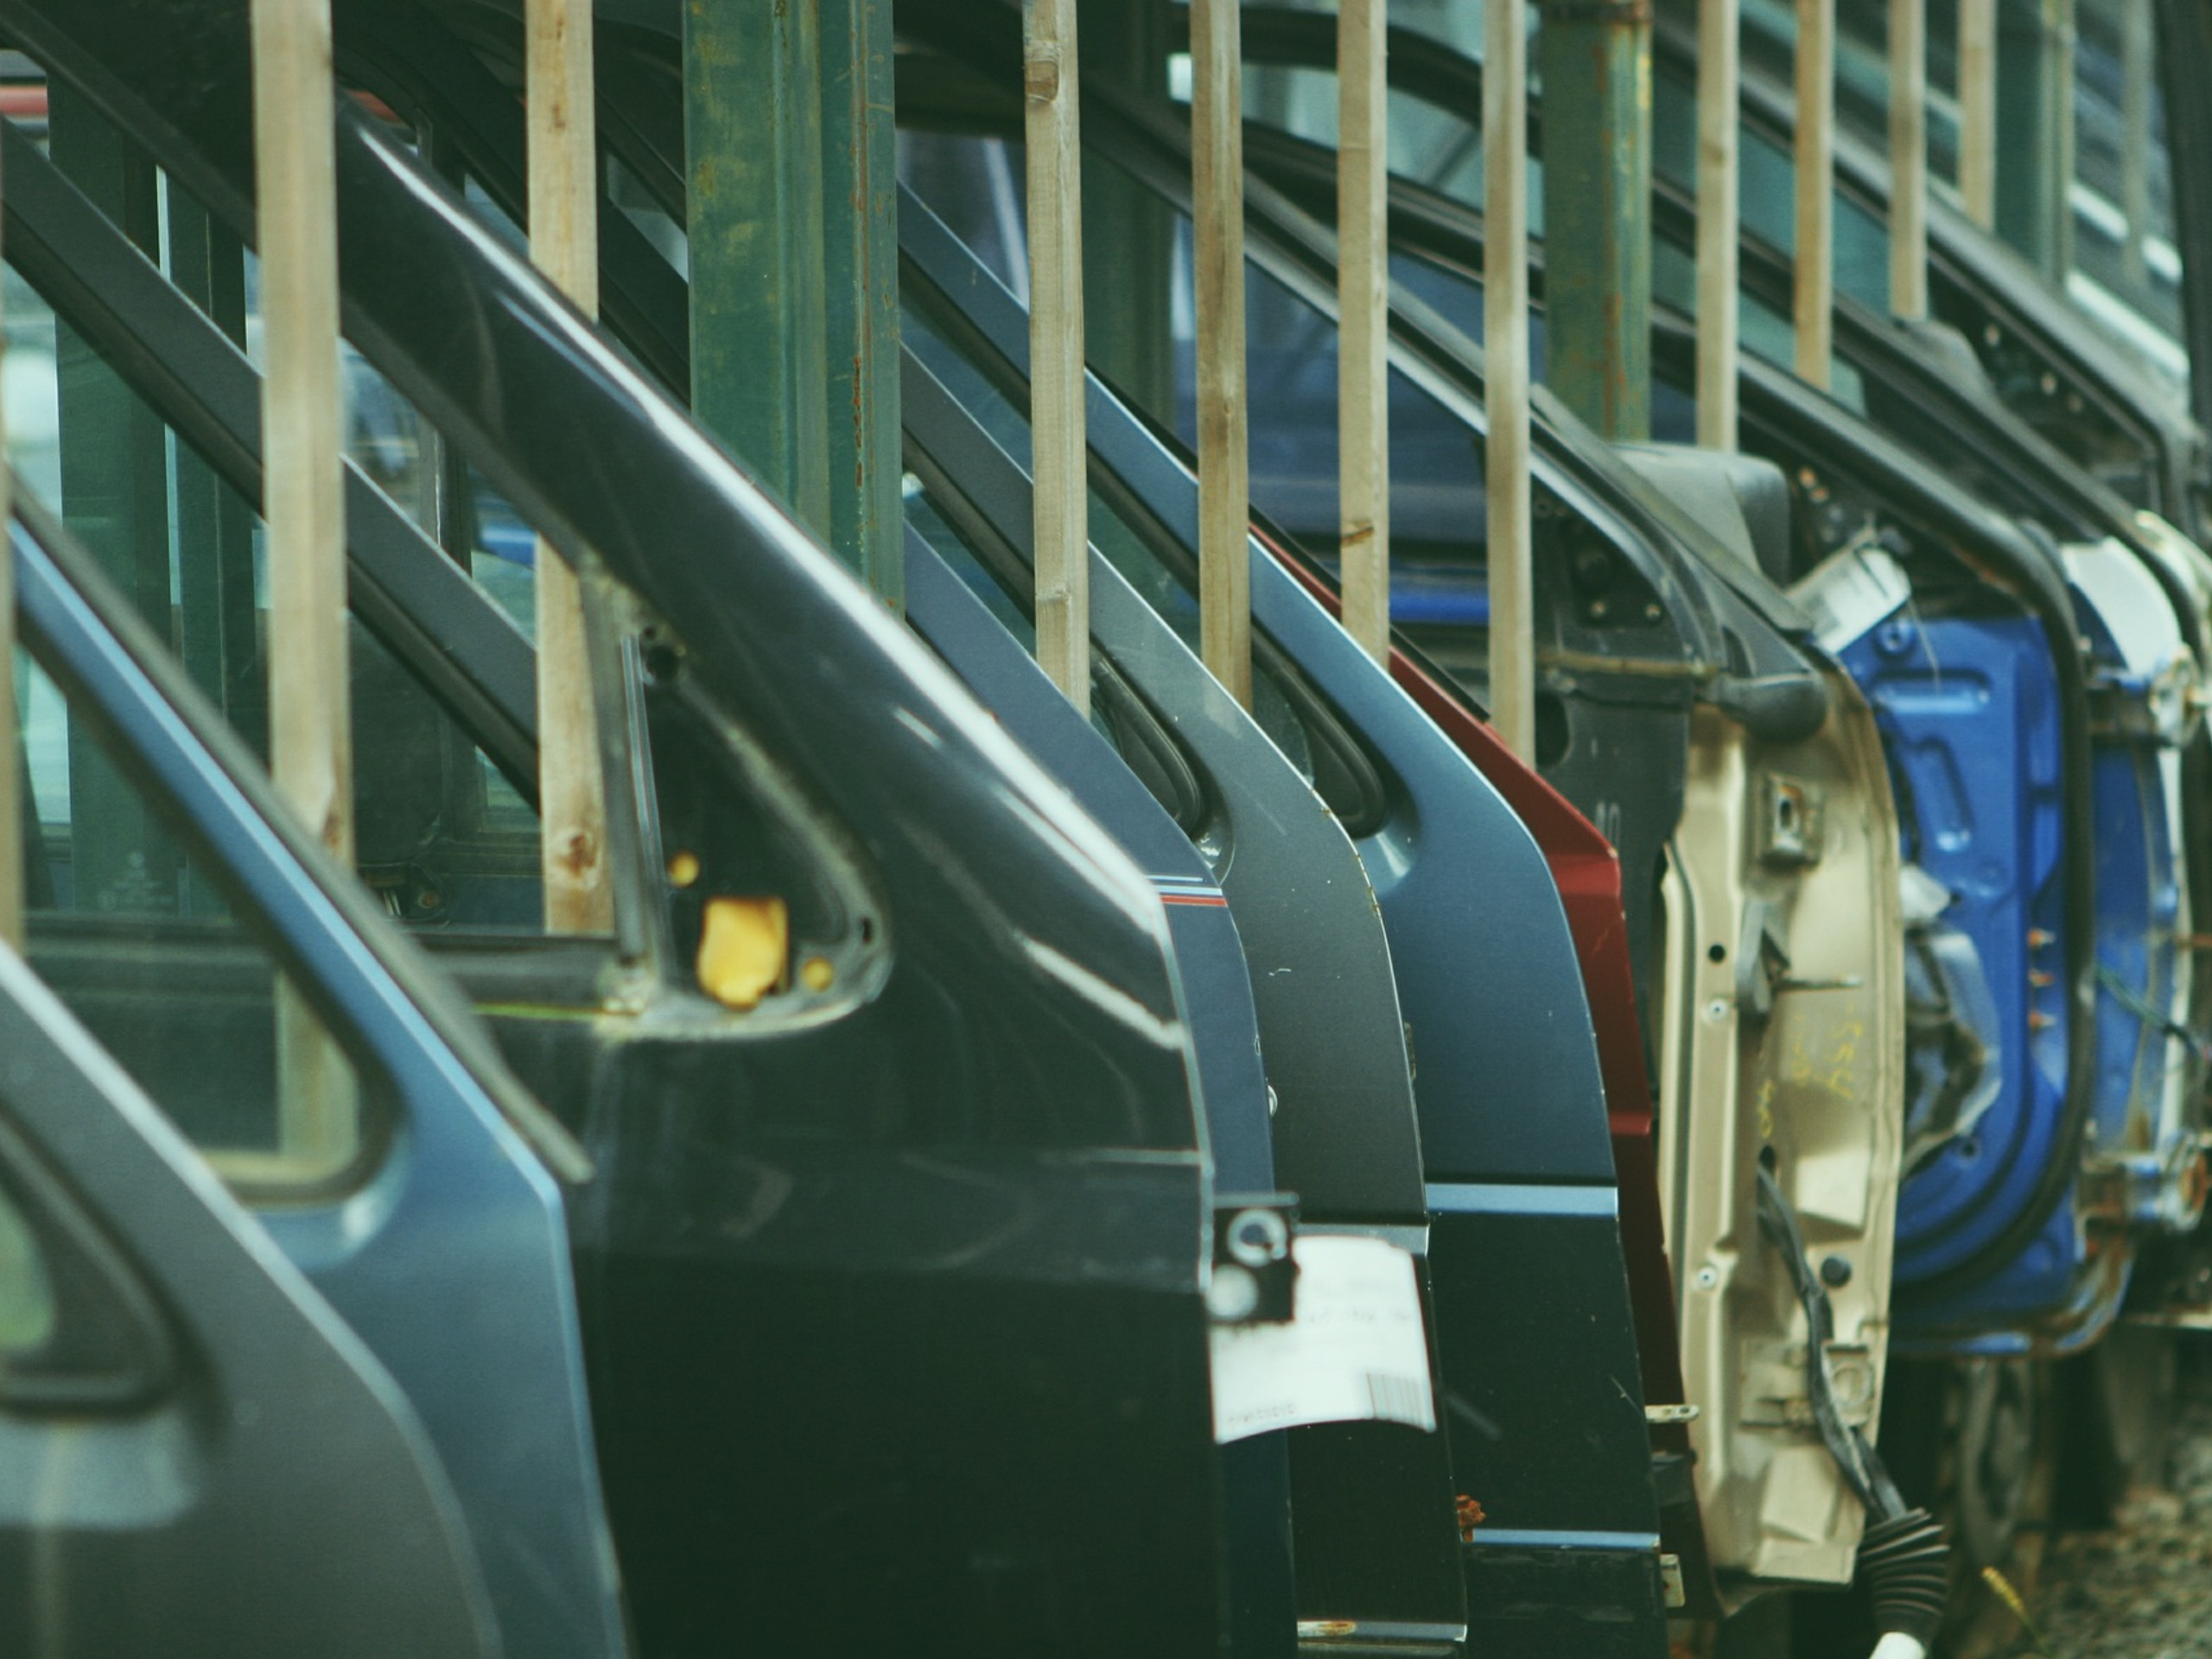 Automotive Supply Chain Management Solutions to Save Time and Money